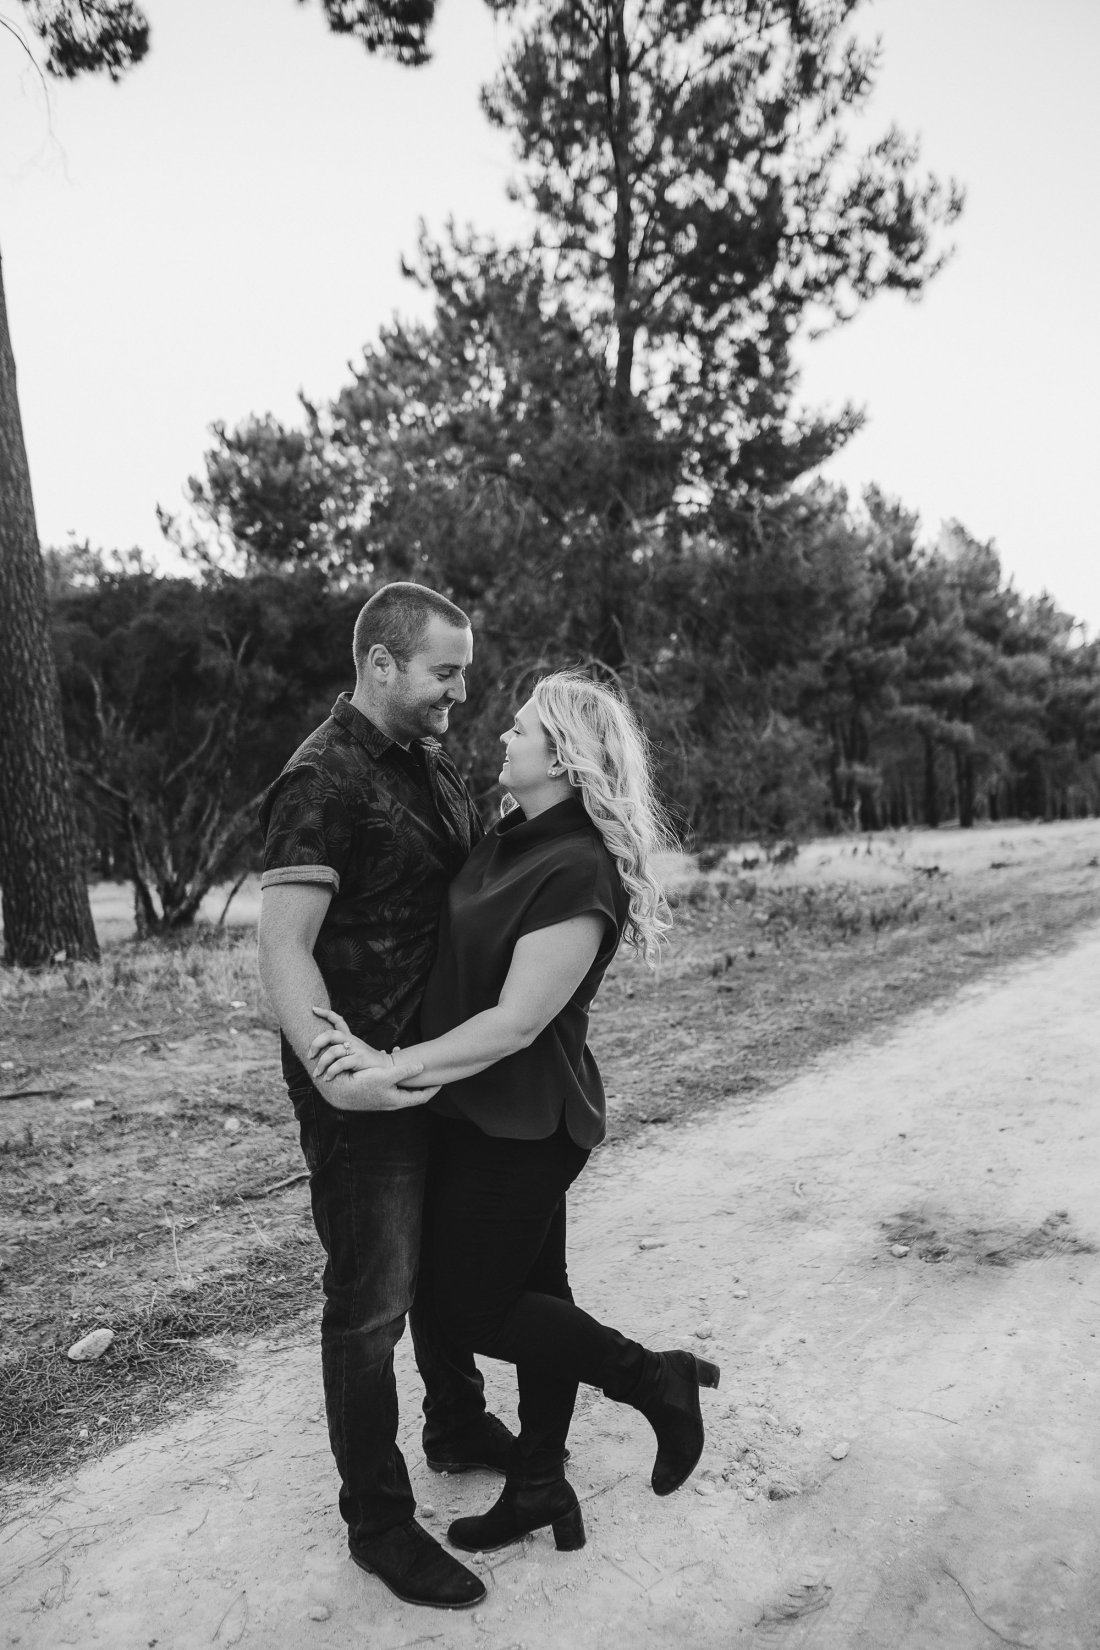 Perth Wedding Photographer | Pines Forrest Engagment | Ebony Blush Photography | Corry + Reece | Pre Wedding271